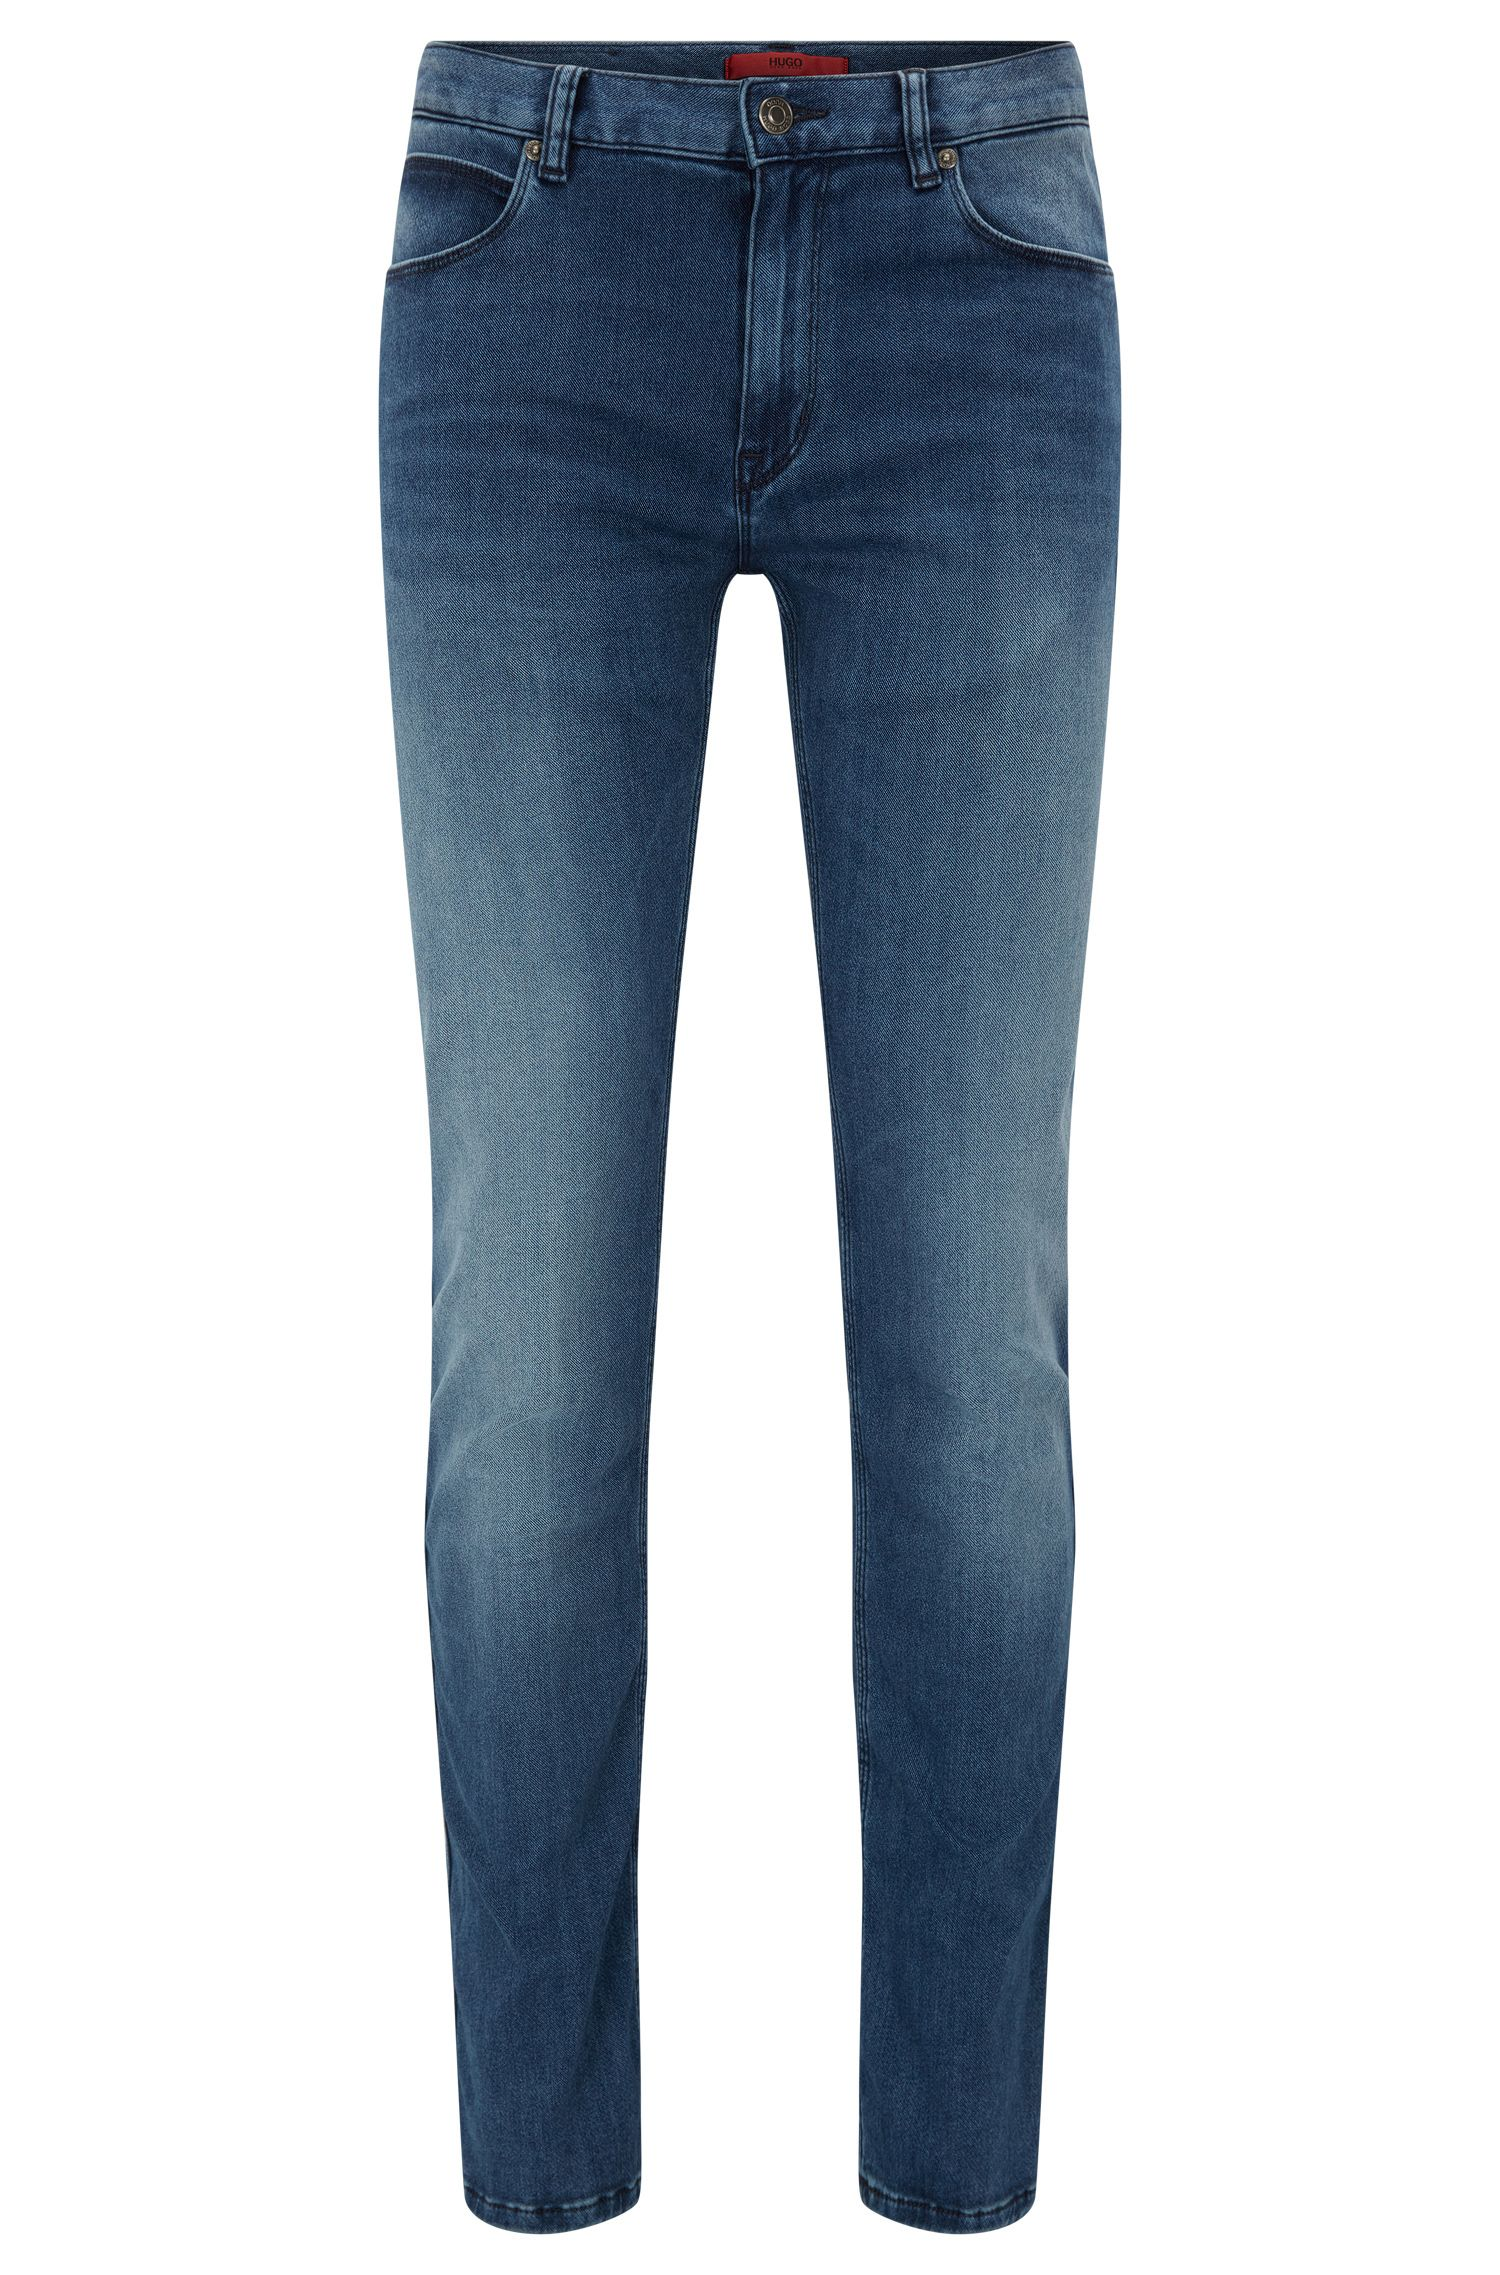 Jeans slim fit con effetto stonewashed in denim super elasticizzato